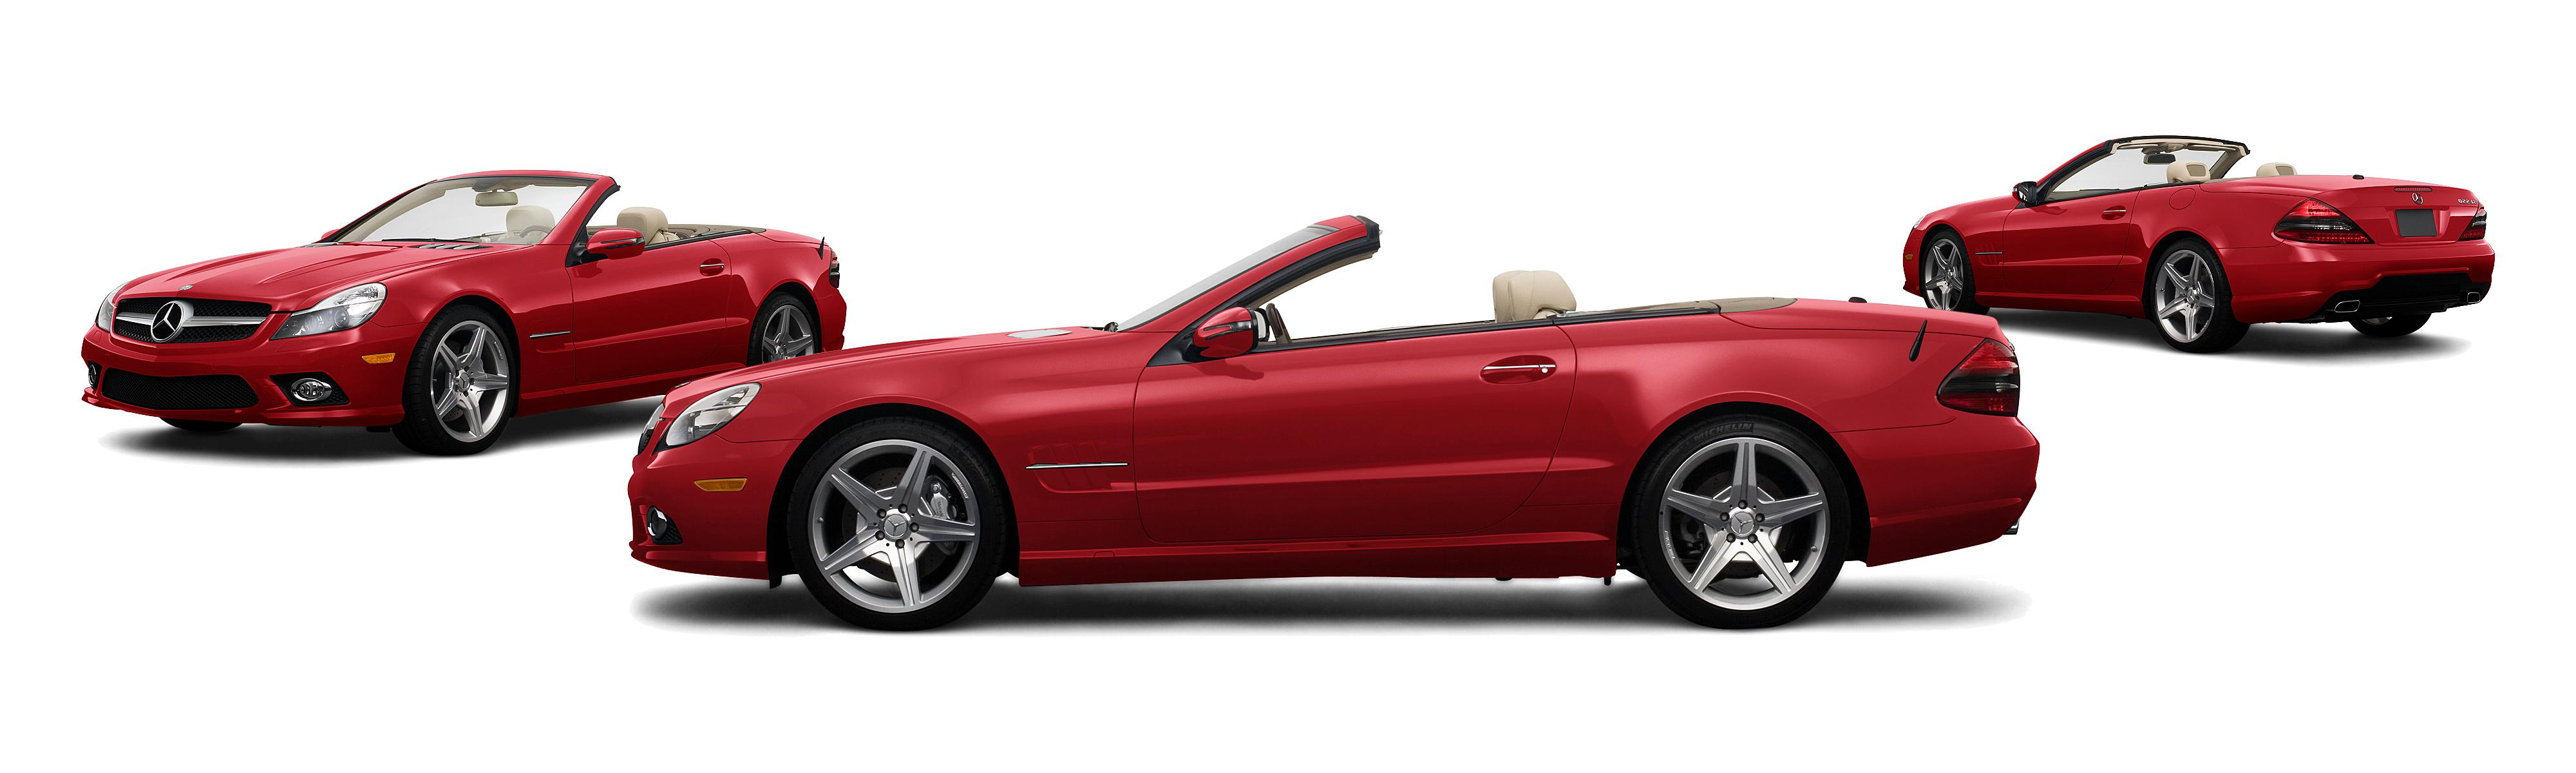 scorches q com amazonaws gt cars arizona roadster mercedes url lawrence the staging new editor convertibles ulrich c benz amg drive s